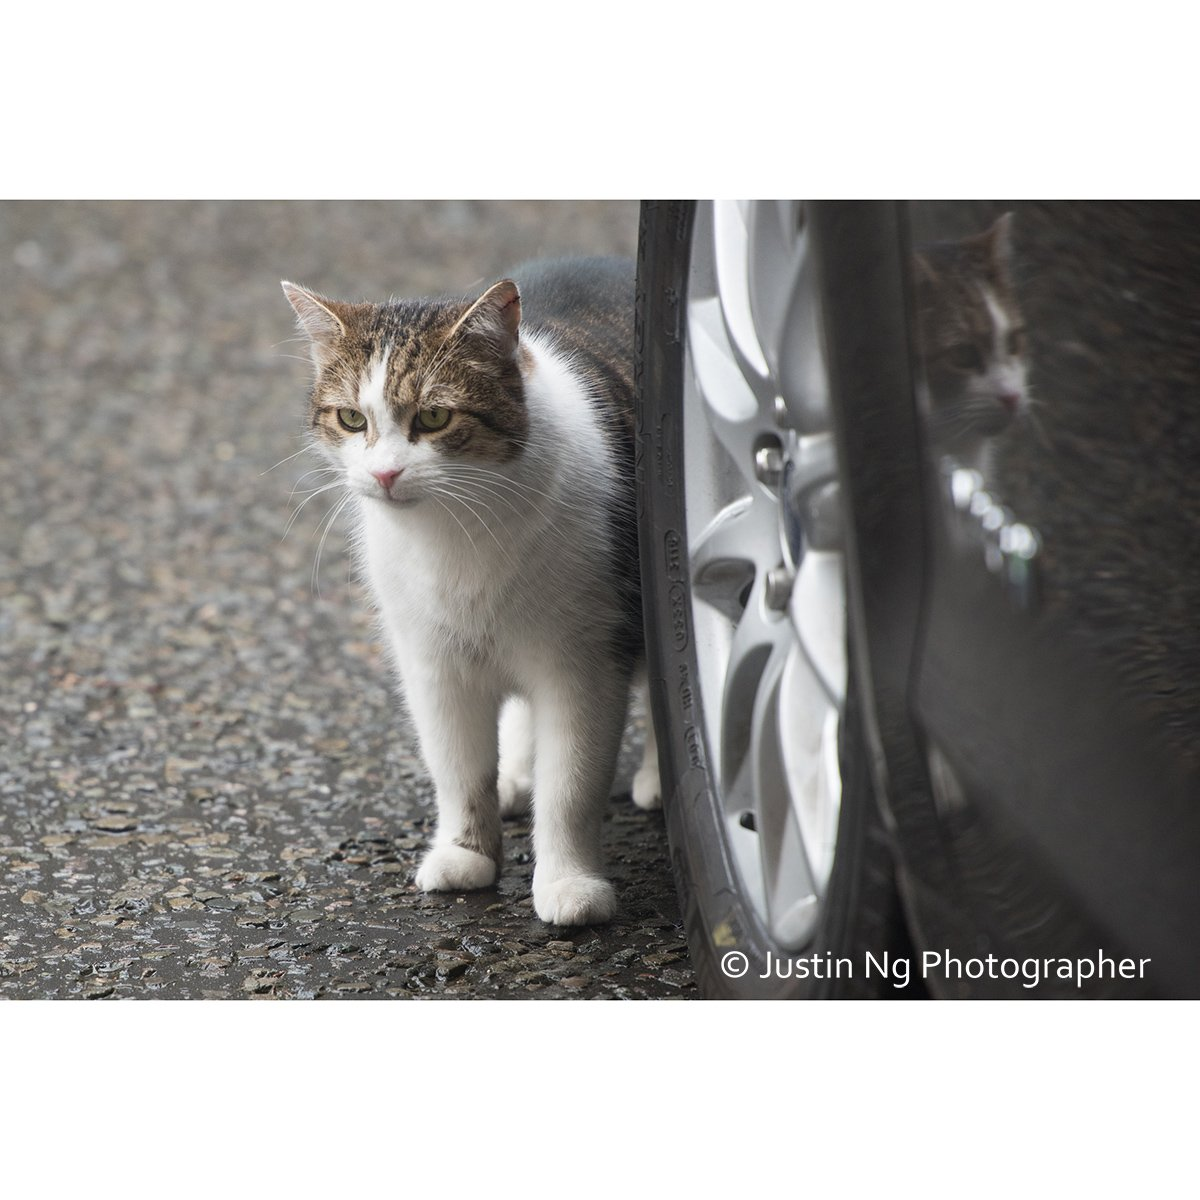 Ready for his close-up. Good to see you @Number10cat Wish we all could be Happy as Larry. <br>http://pic.twitter.com/Y0OkATiFKD